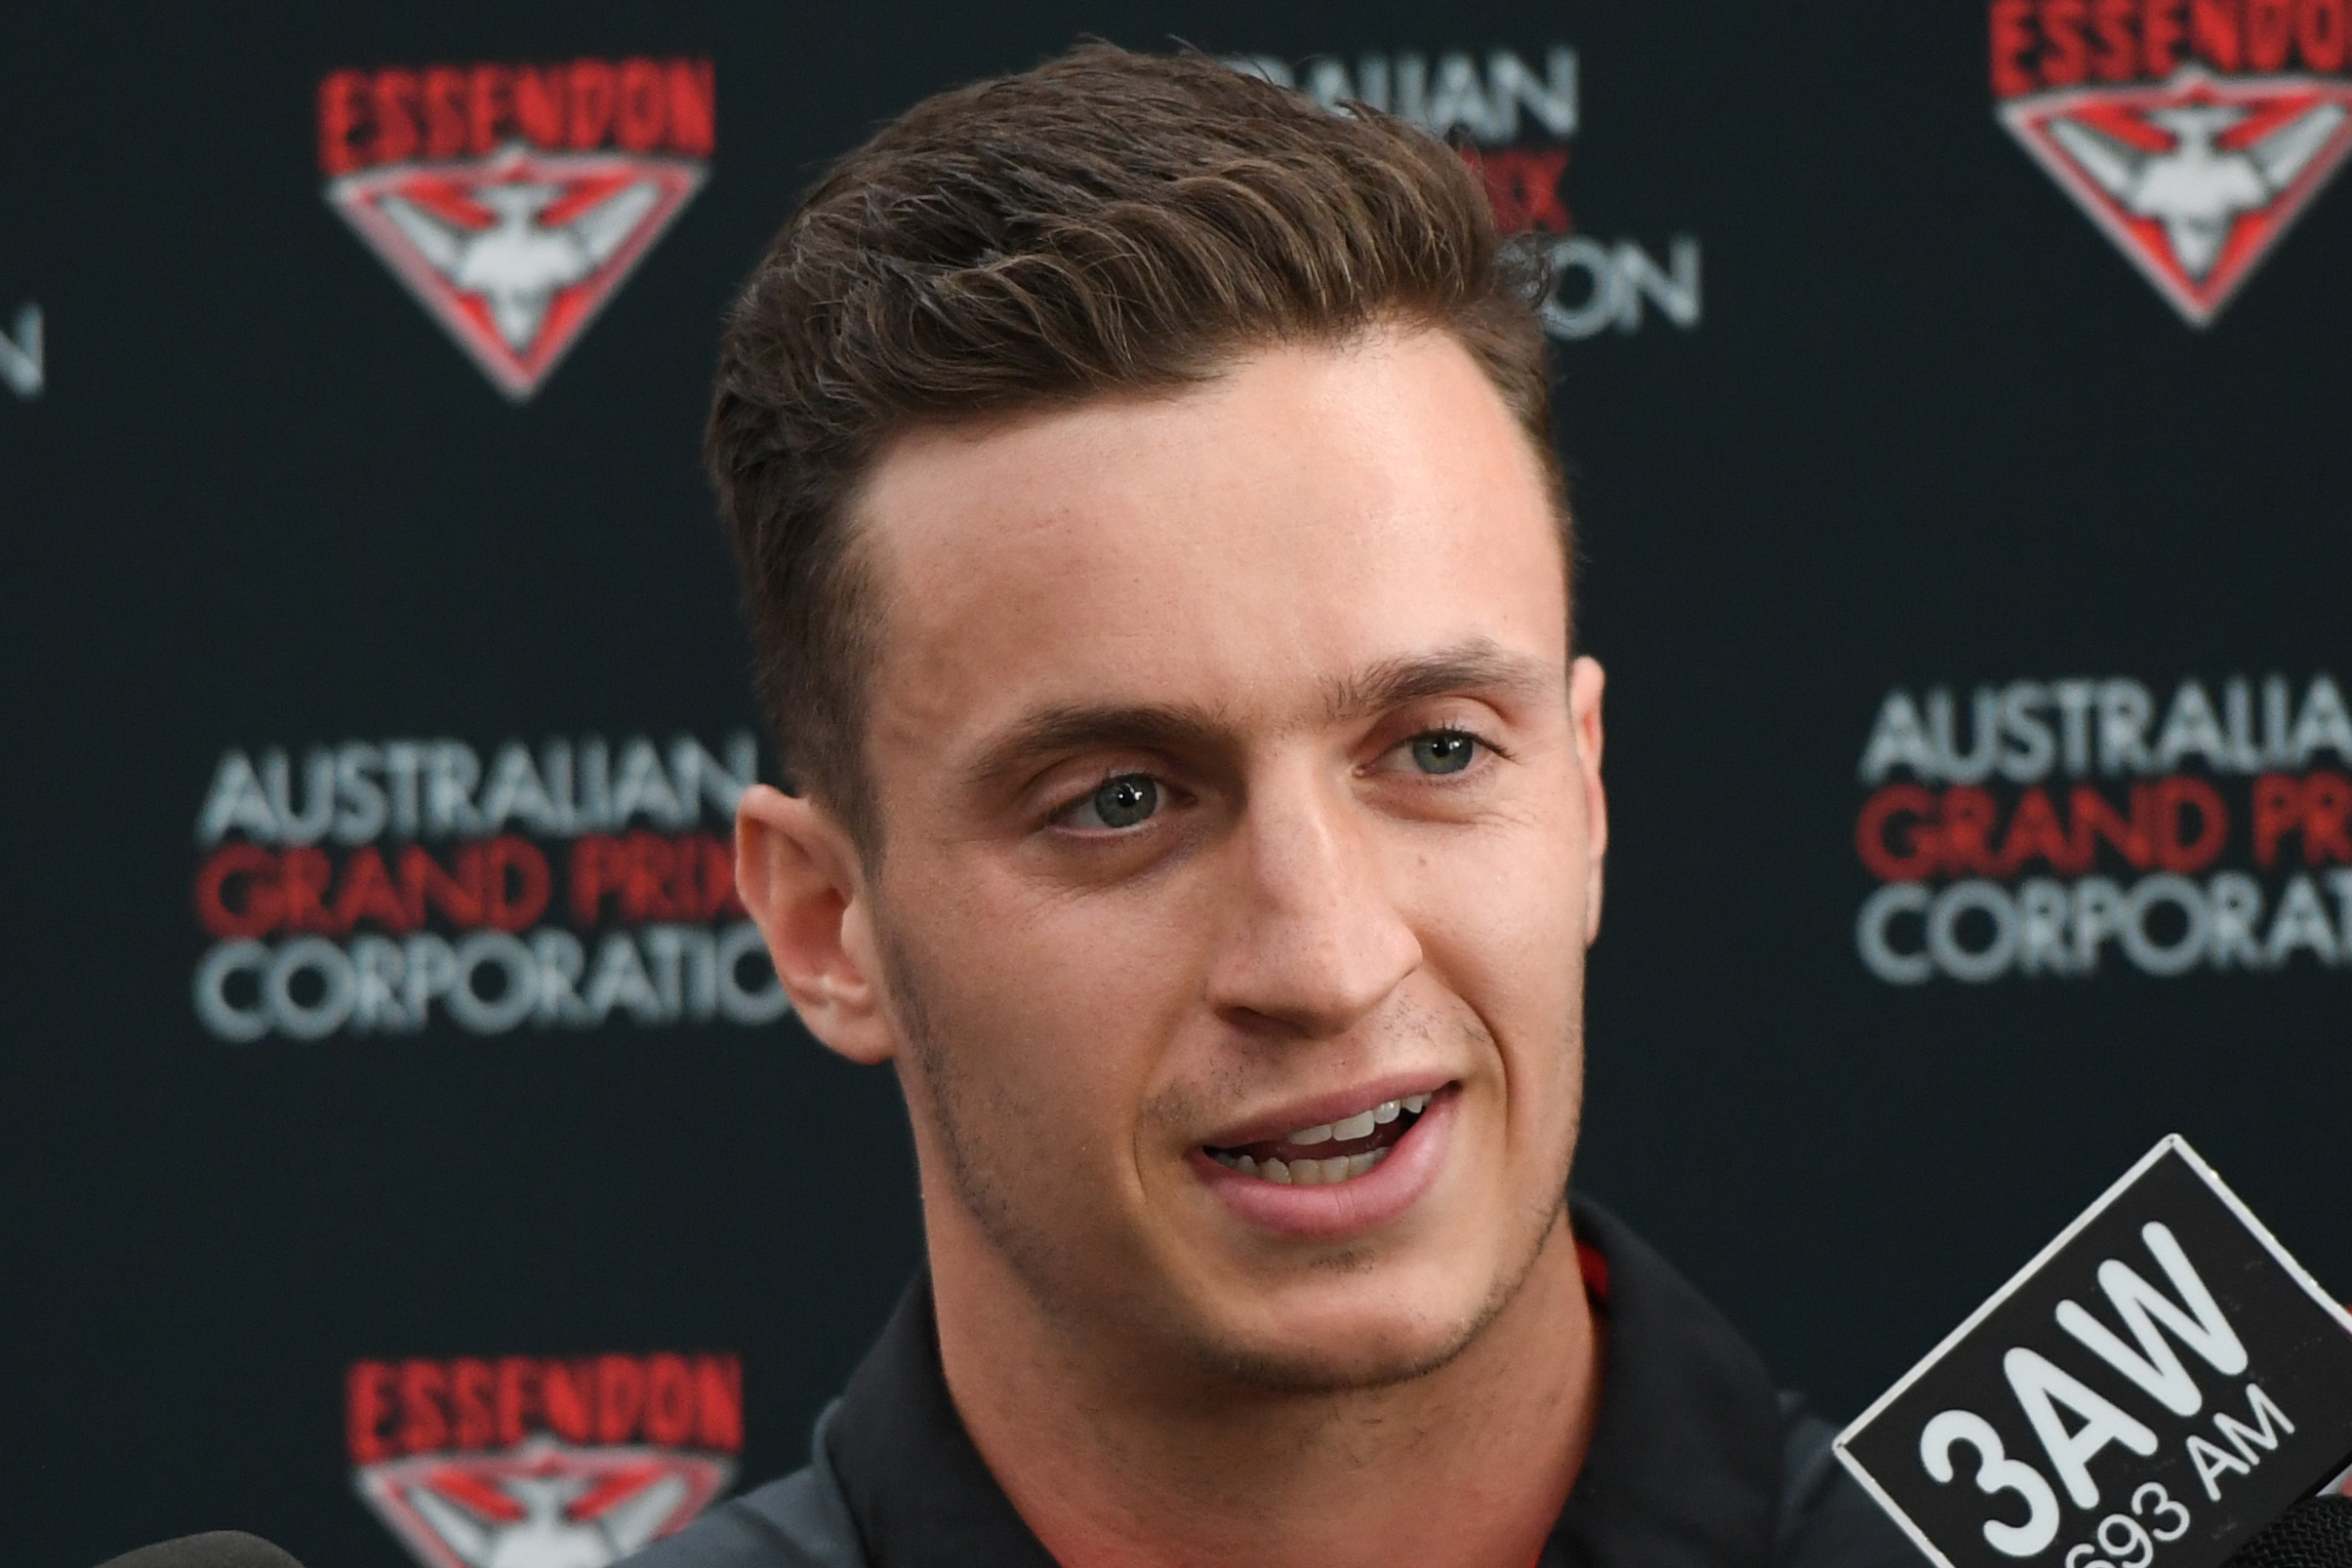 Article image for Newsreader says Essendon footballer likely 'just trying to fit in' following pronunciation confusion